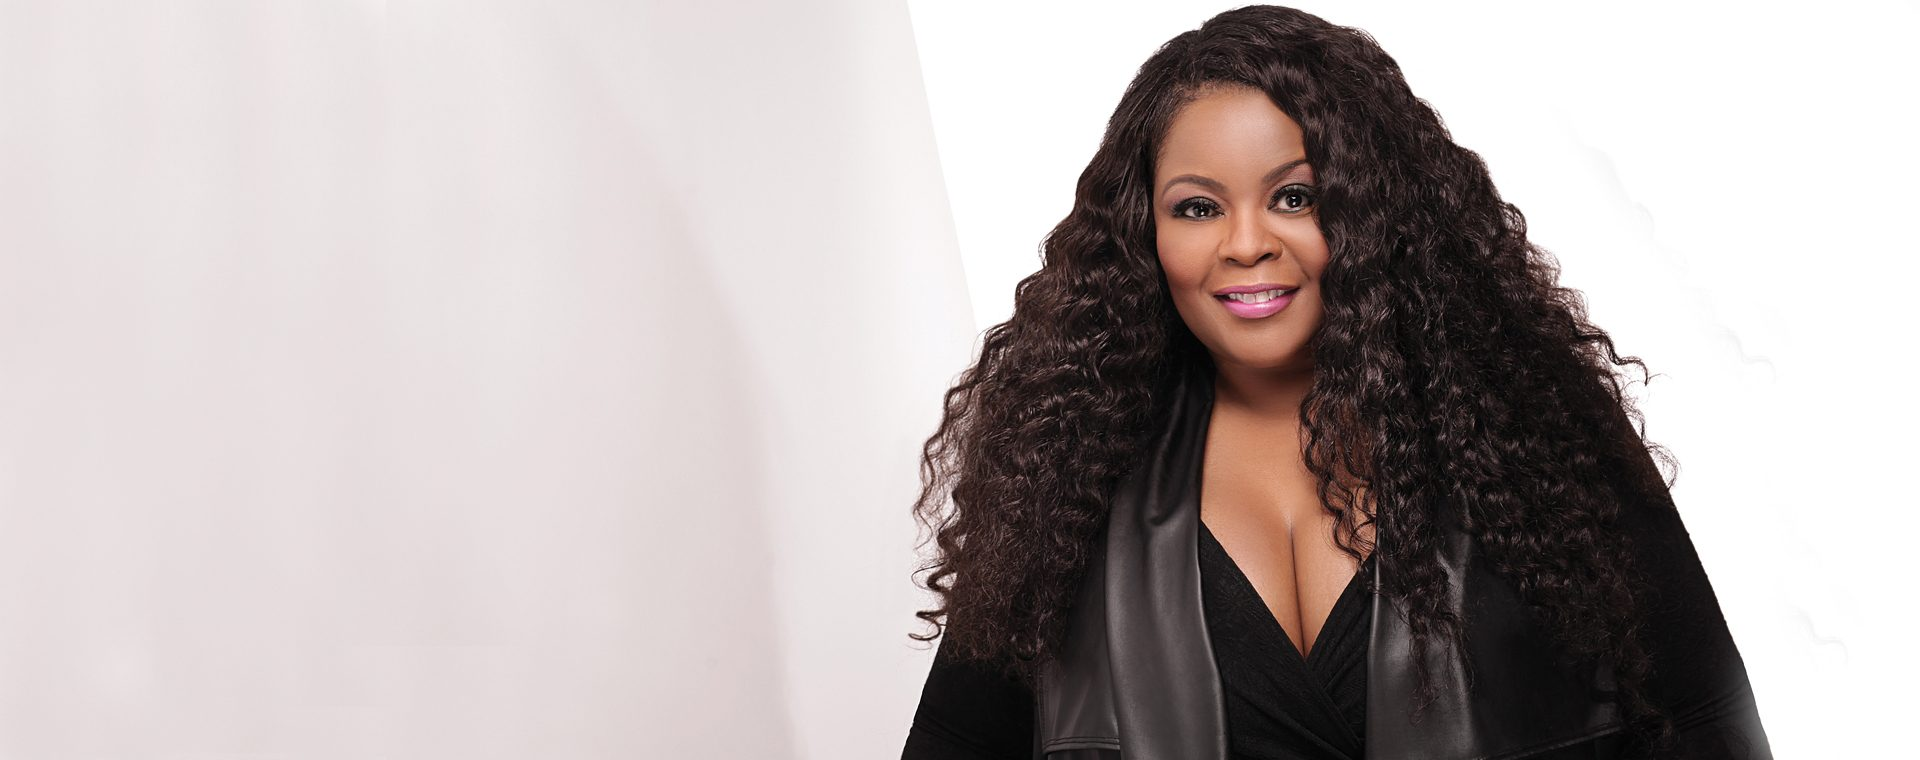 LATEST ISSUE <br><b>Maysa</b></br>